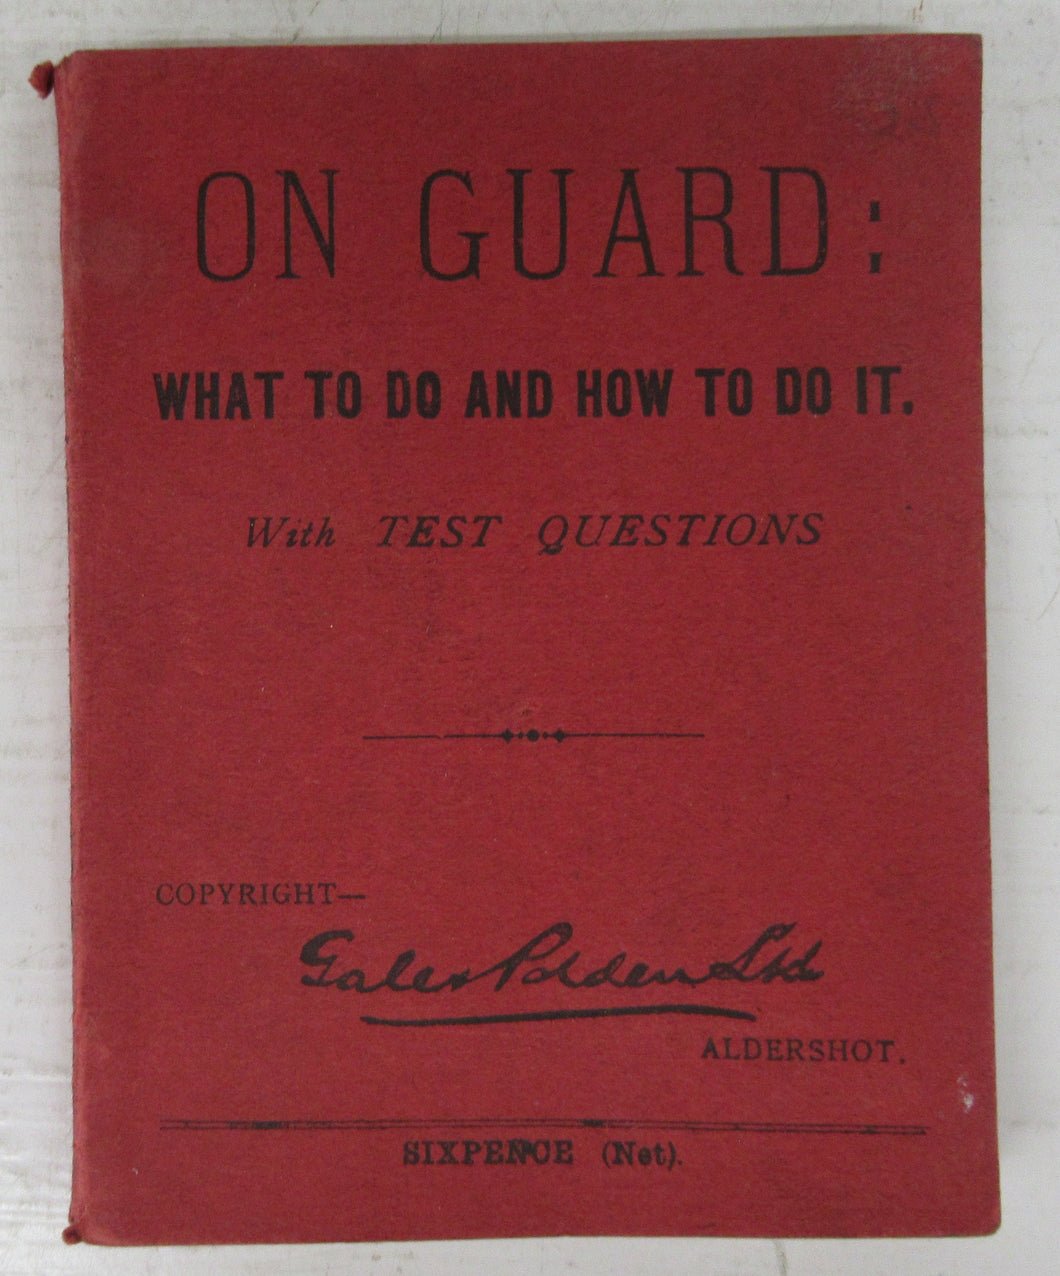 On Guard: What To Do and How To Do It. With Test Questions